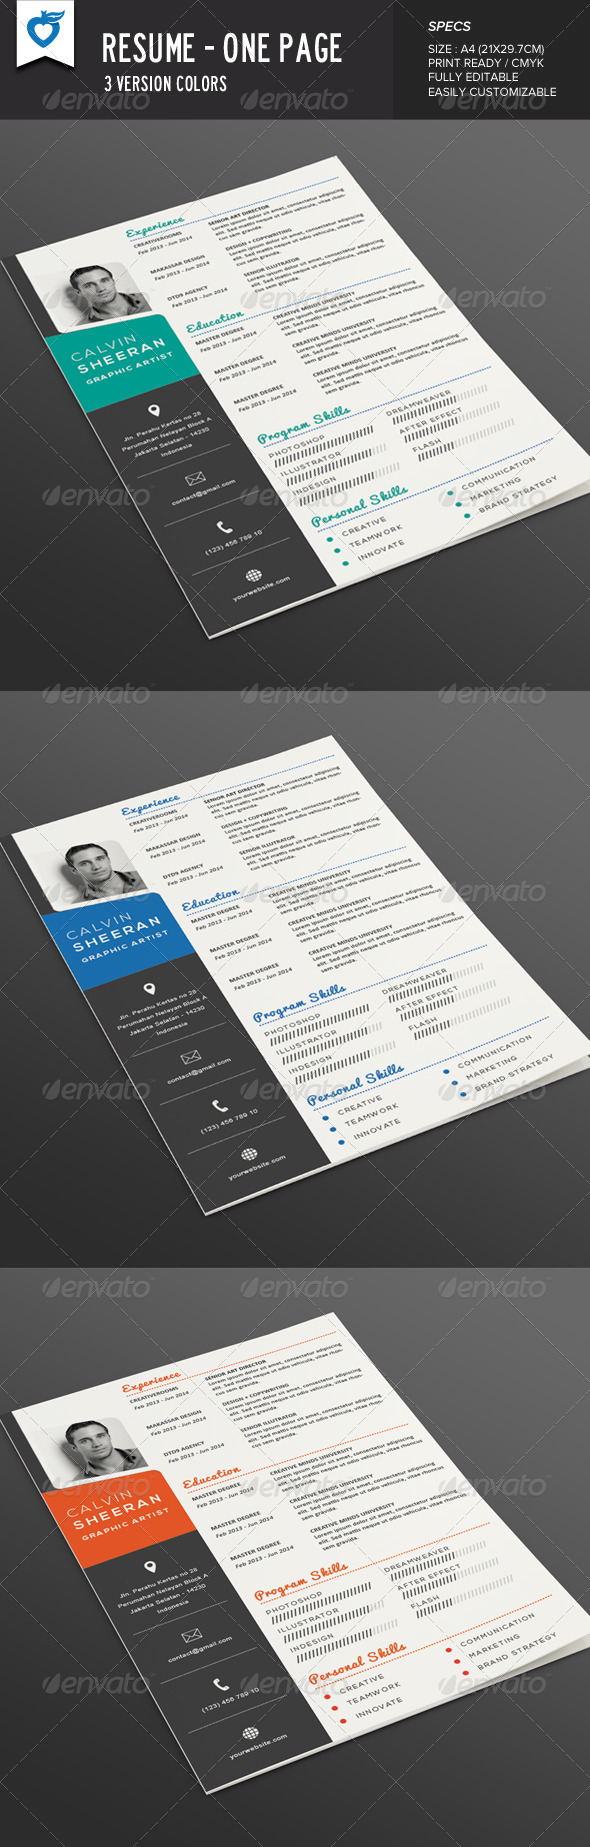 GraphicRiver Resume One page 8241543